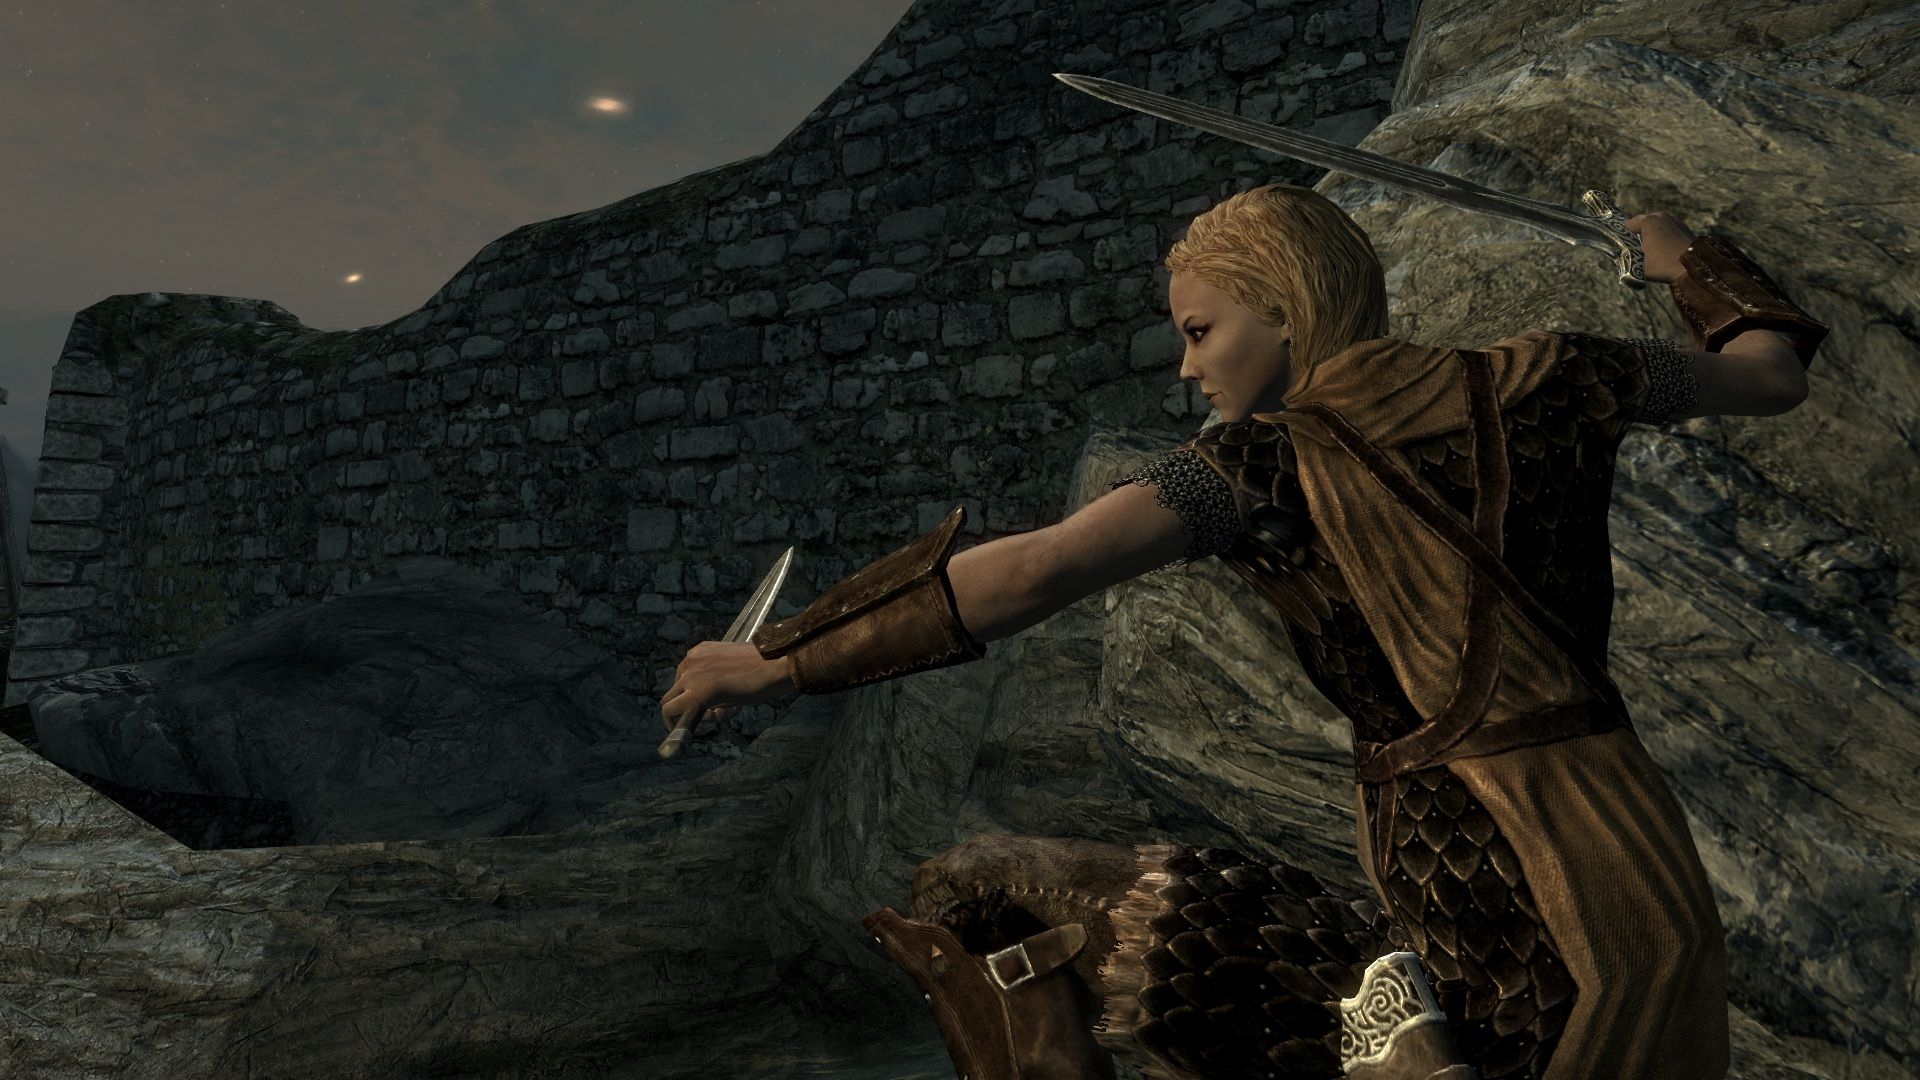 Uesp Forums View Topic What Are You Wearing What Are You Wielding